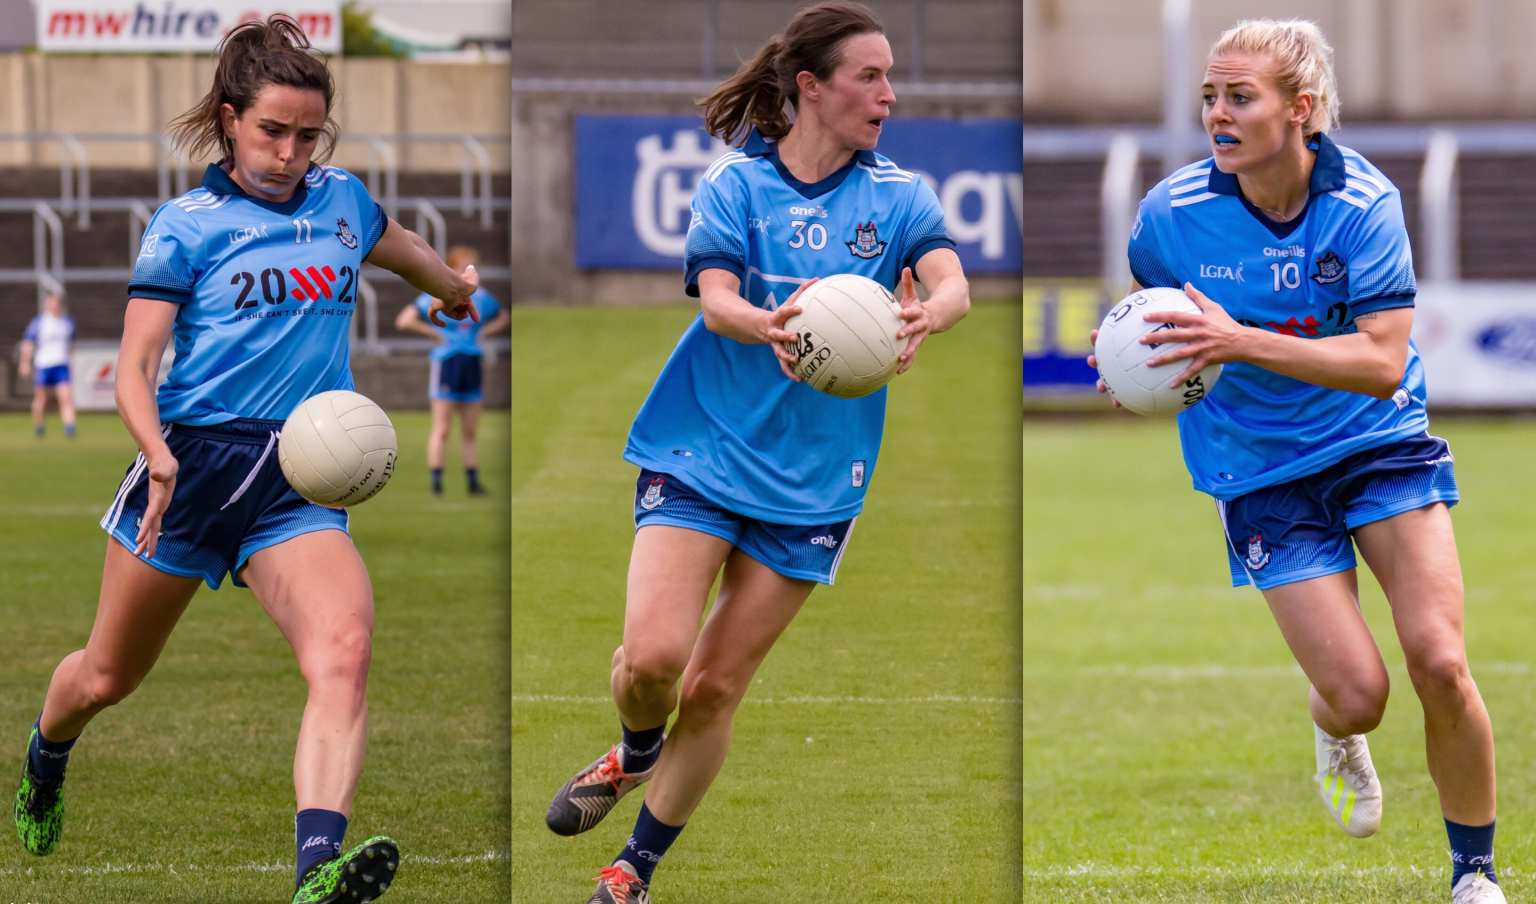 Dublin Footballers Niamh McEvoy, Sinead Aherne and Nicole Owens the top three scorers in the Dublin Championship Top Scorer Leaderboard